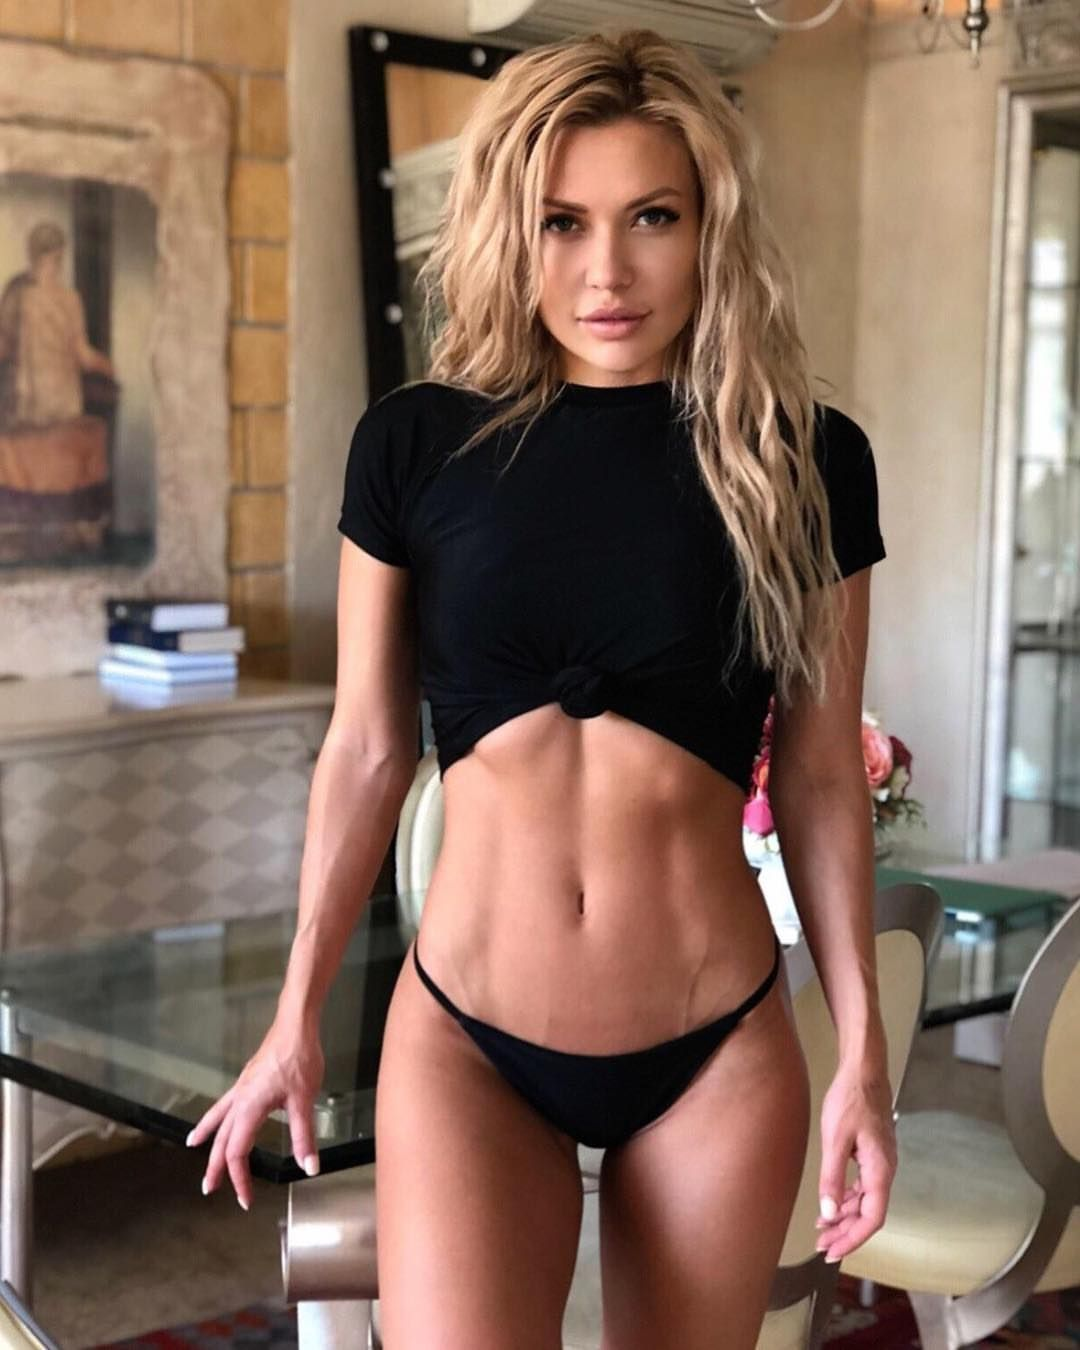 Pin On Fit Girls World